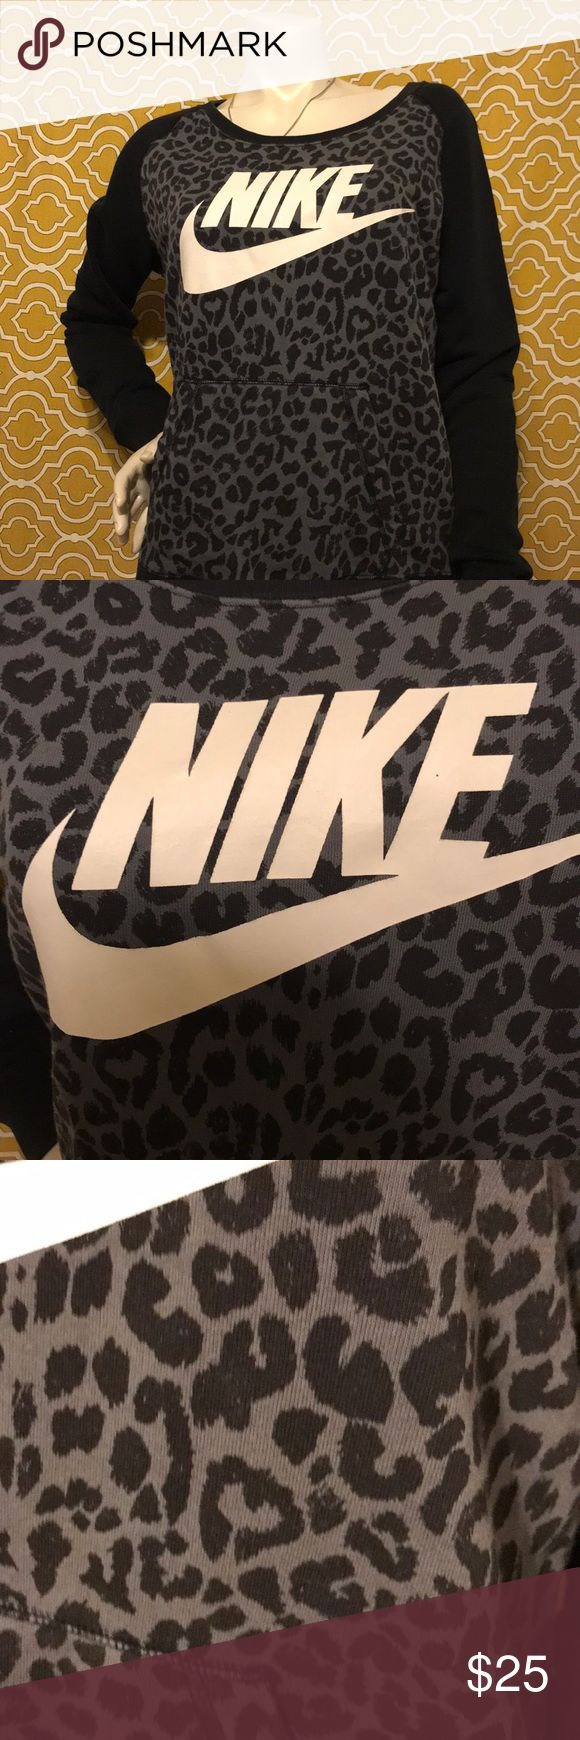 Nike leopard hoodie Black and grey leopard print Nike hoodie with logo and black arms in a size medium! In great preloved condition! Super warm and comfortable for those lazy cooler days. Open to offers 😊 Nike Sweaters